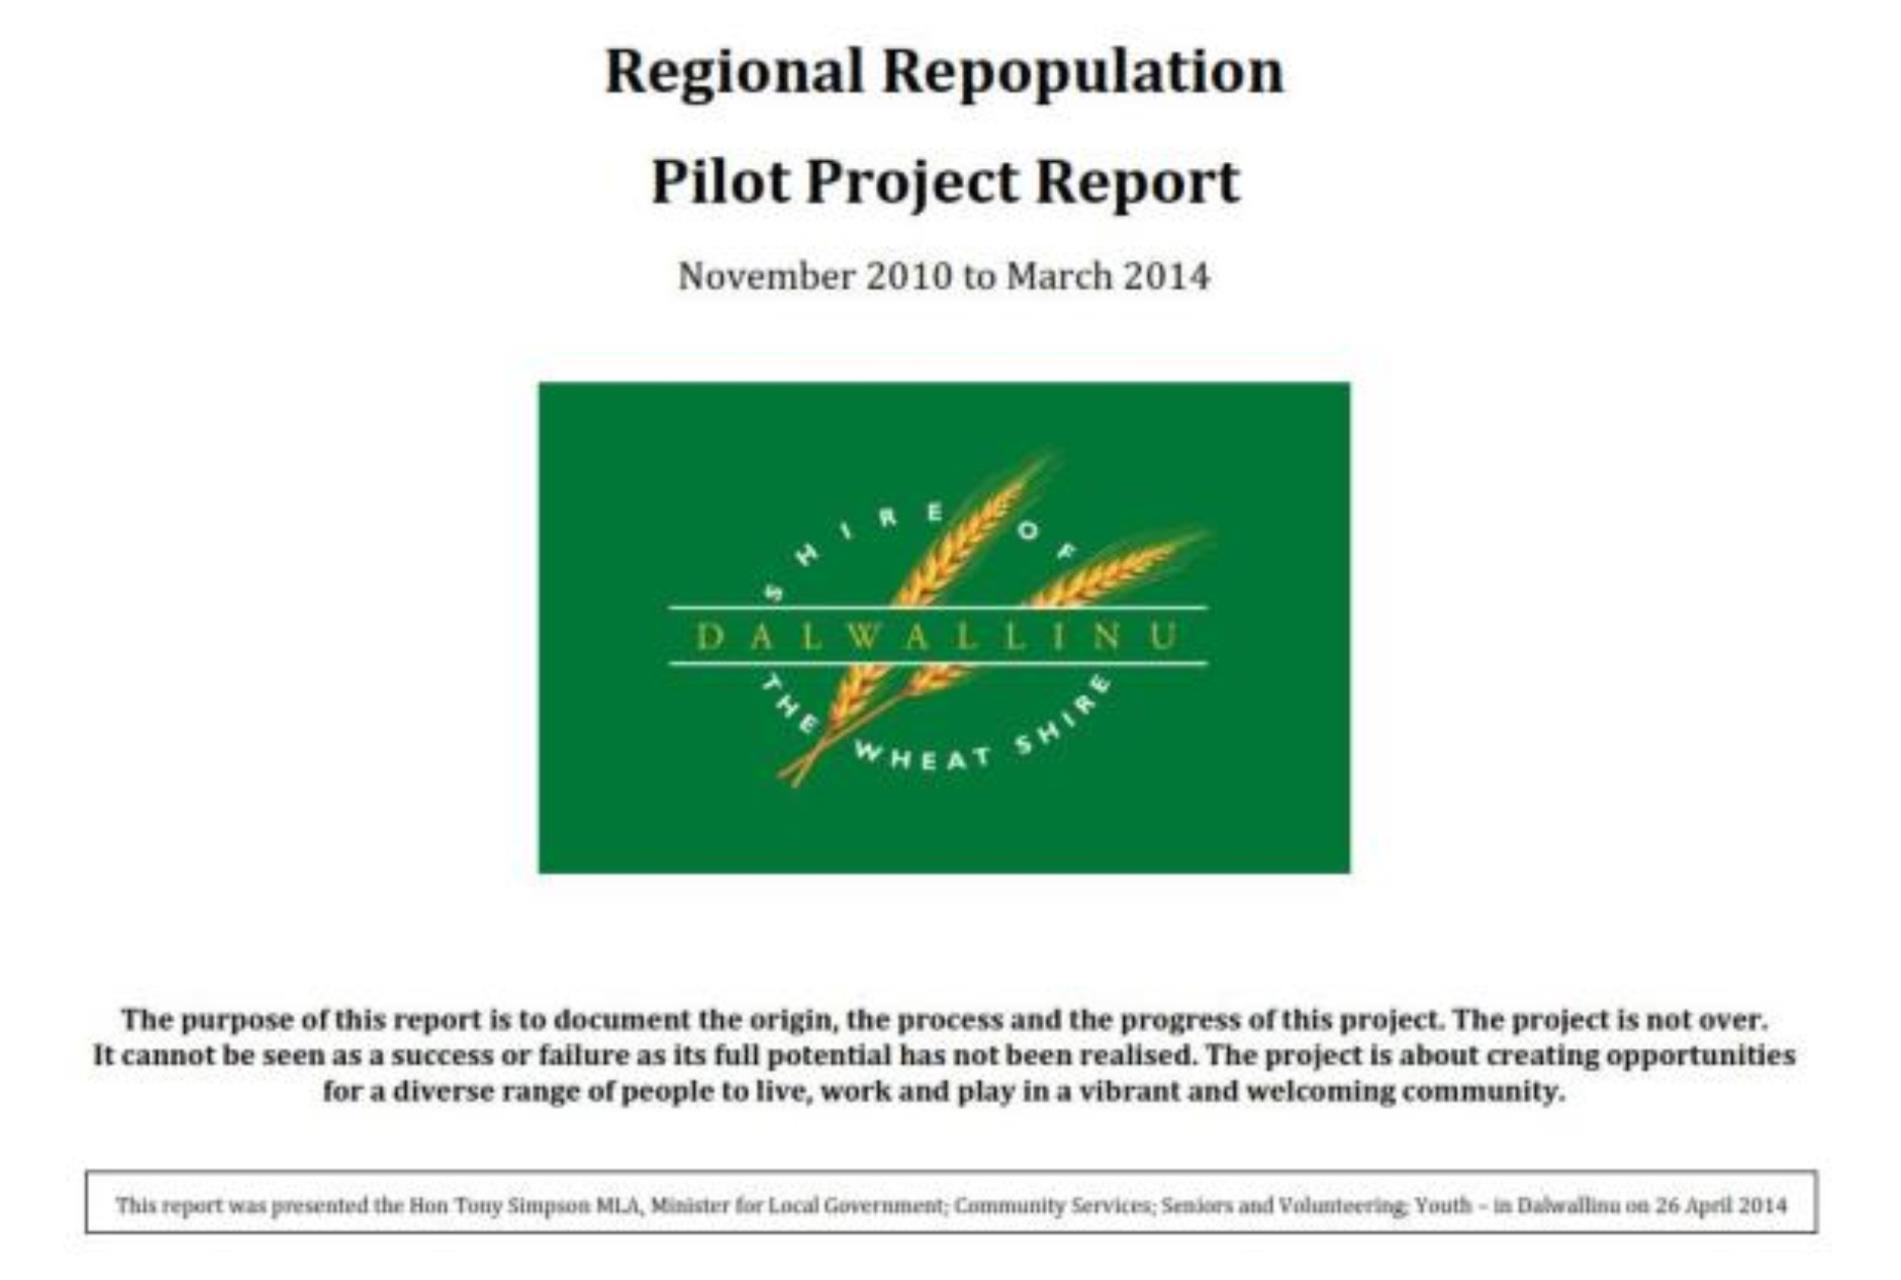 Regional Repopulation Pilot Project Report